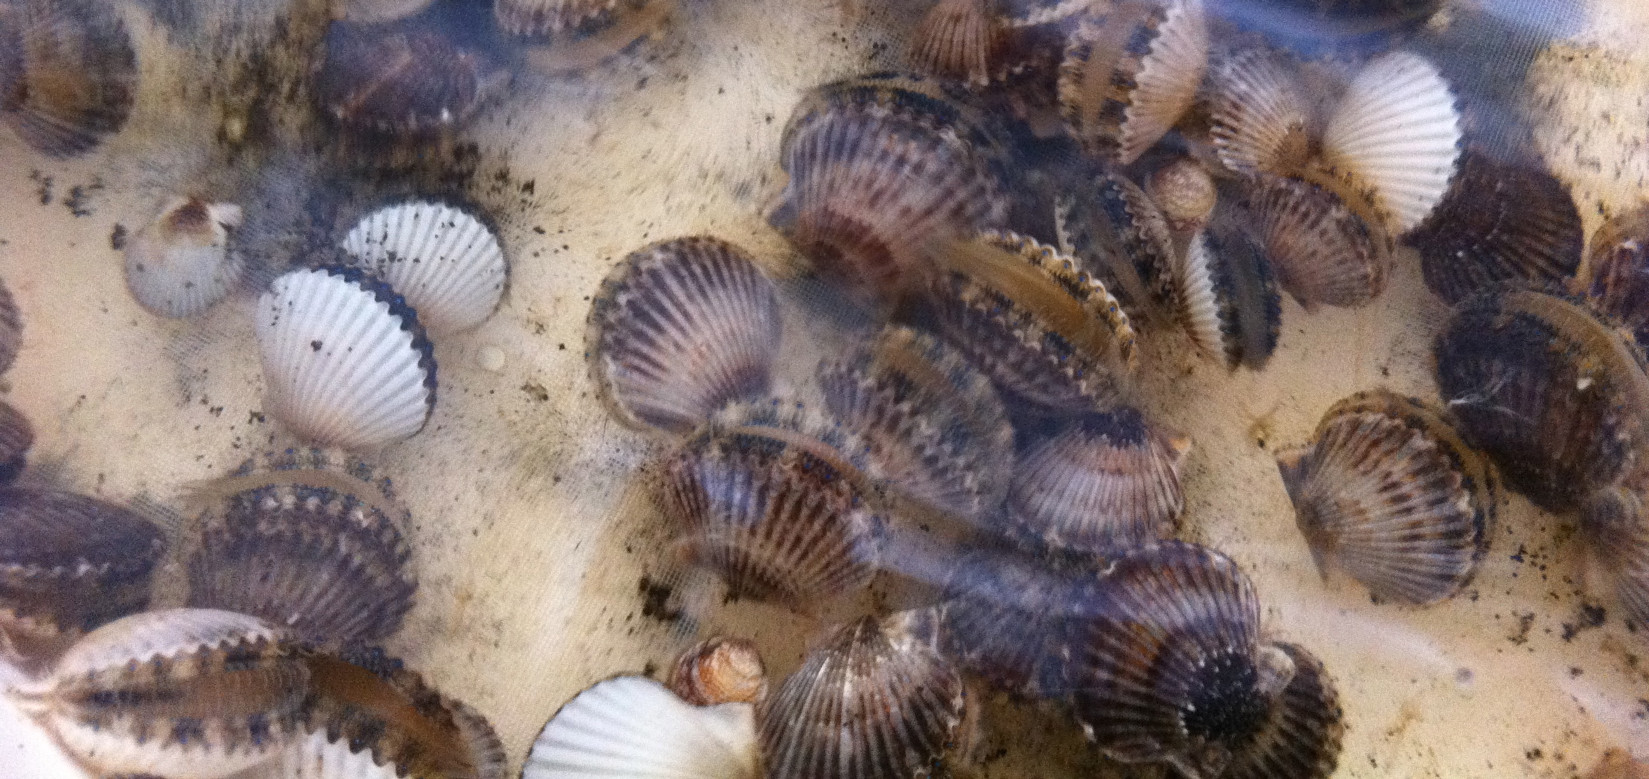 BAY SHELLFISH.      .        JUVENILE SCALLOPS  AVAILABLE EVERY FALL  FLORIDA BAY SCALLOPS WERE COMMERCIALLY HARVESTED UNITL A MORATORIUM IN 1994 FRESH (NOT FROZEN) BAY SCALLOP MEAT HAS BEEN A LONG ESTABLISHED AND HIGH VALUE MARKET IN THE U.S. A NICHE MARKET FOR A LIVE WHOLE SCALLOP ALSO EXISTS